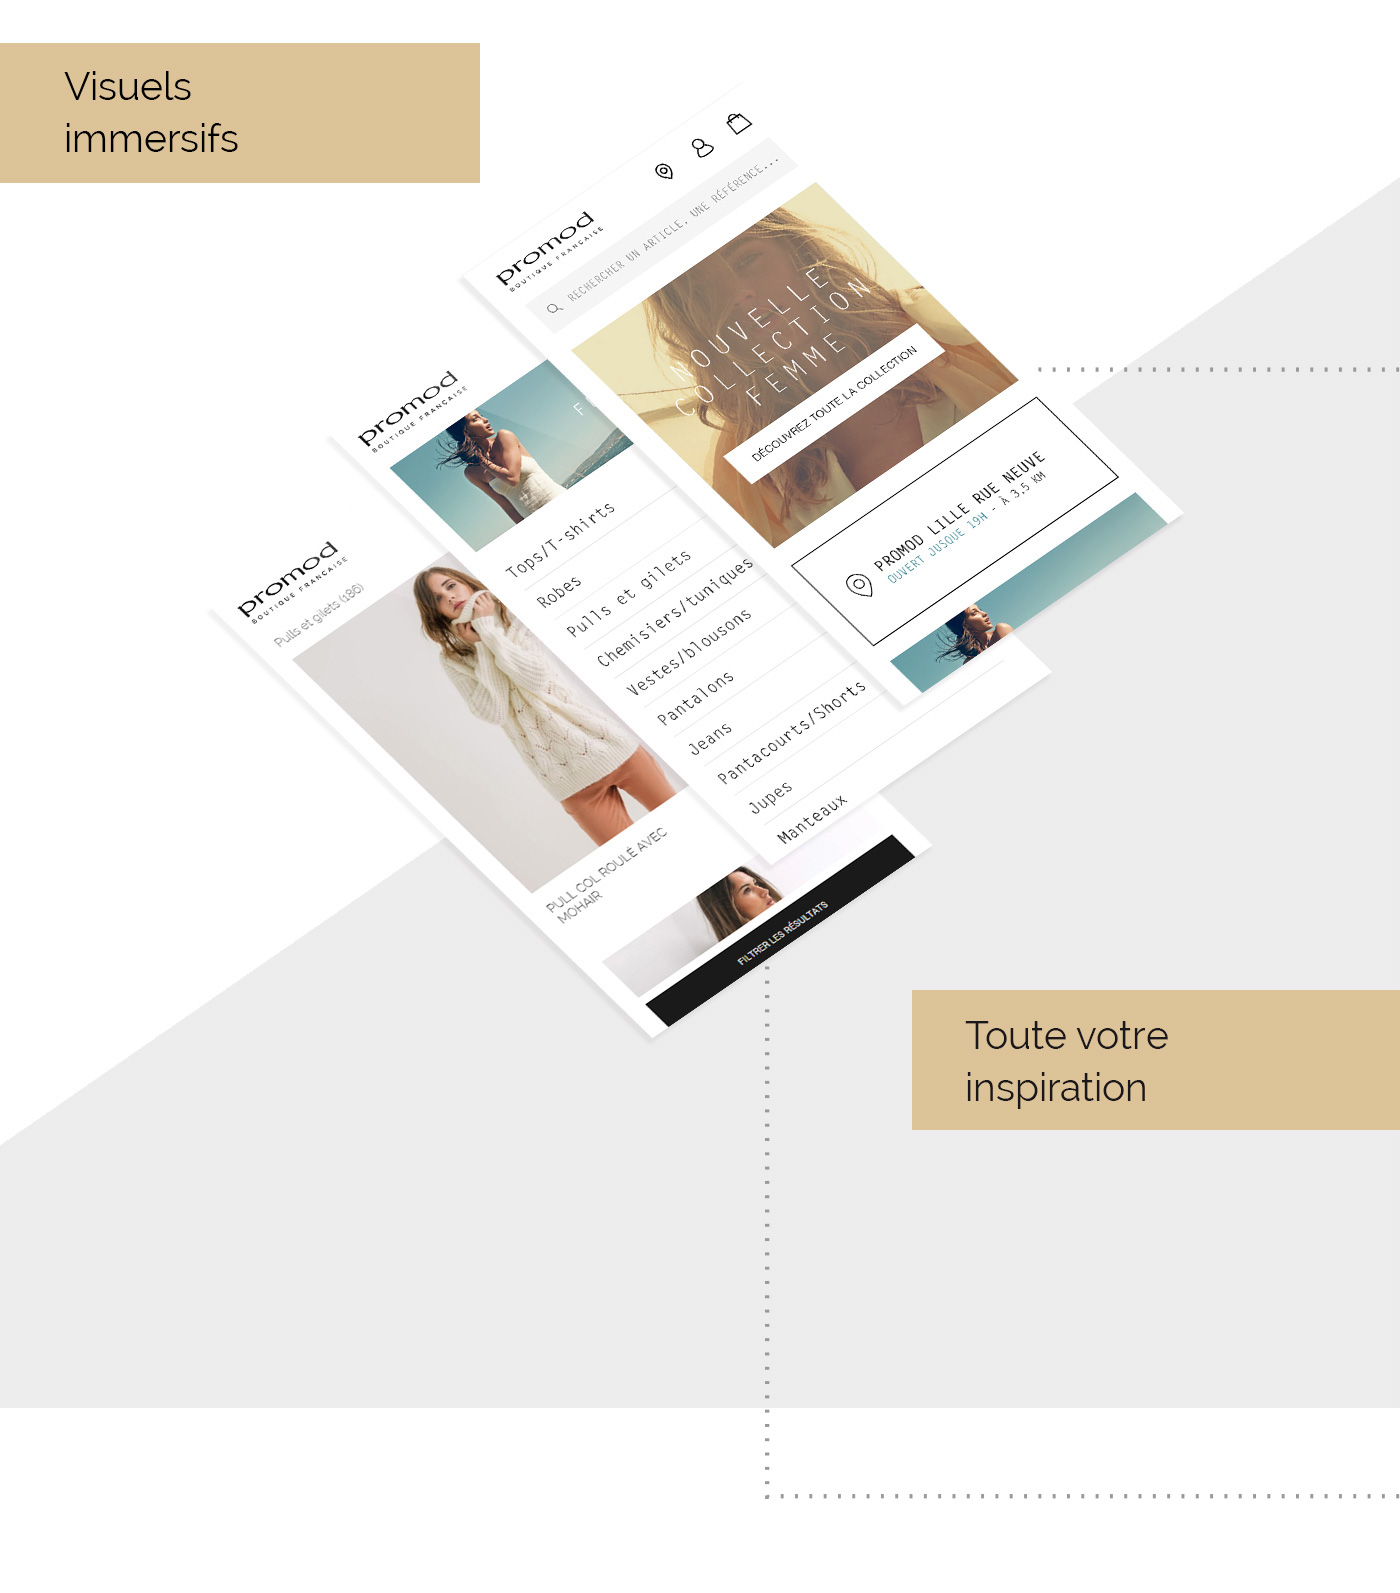 mobile app design e-commerce iphone android Web web mobile